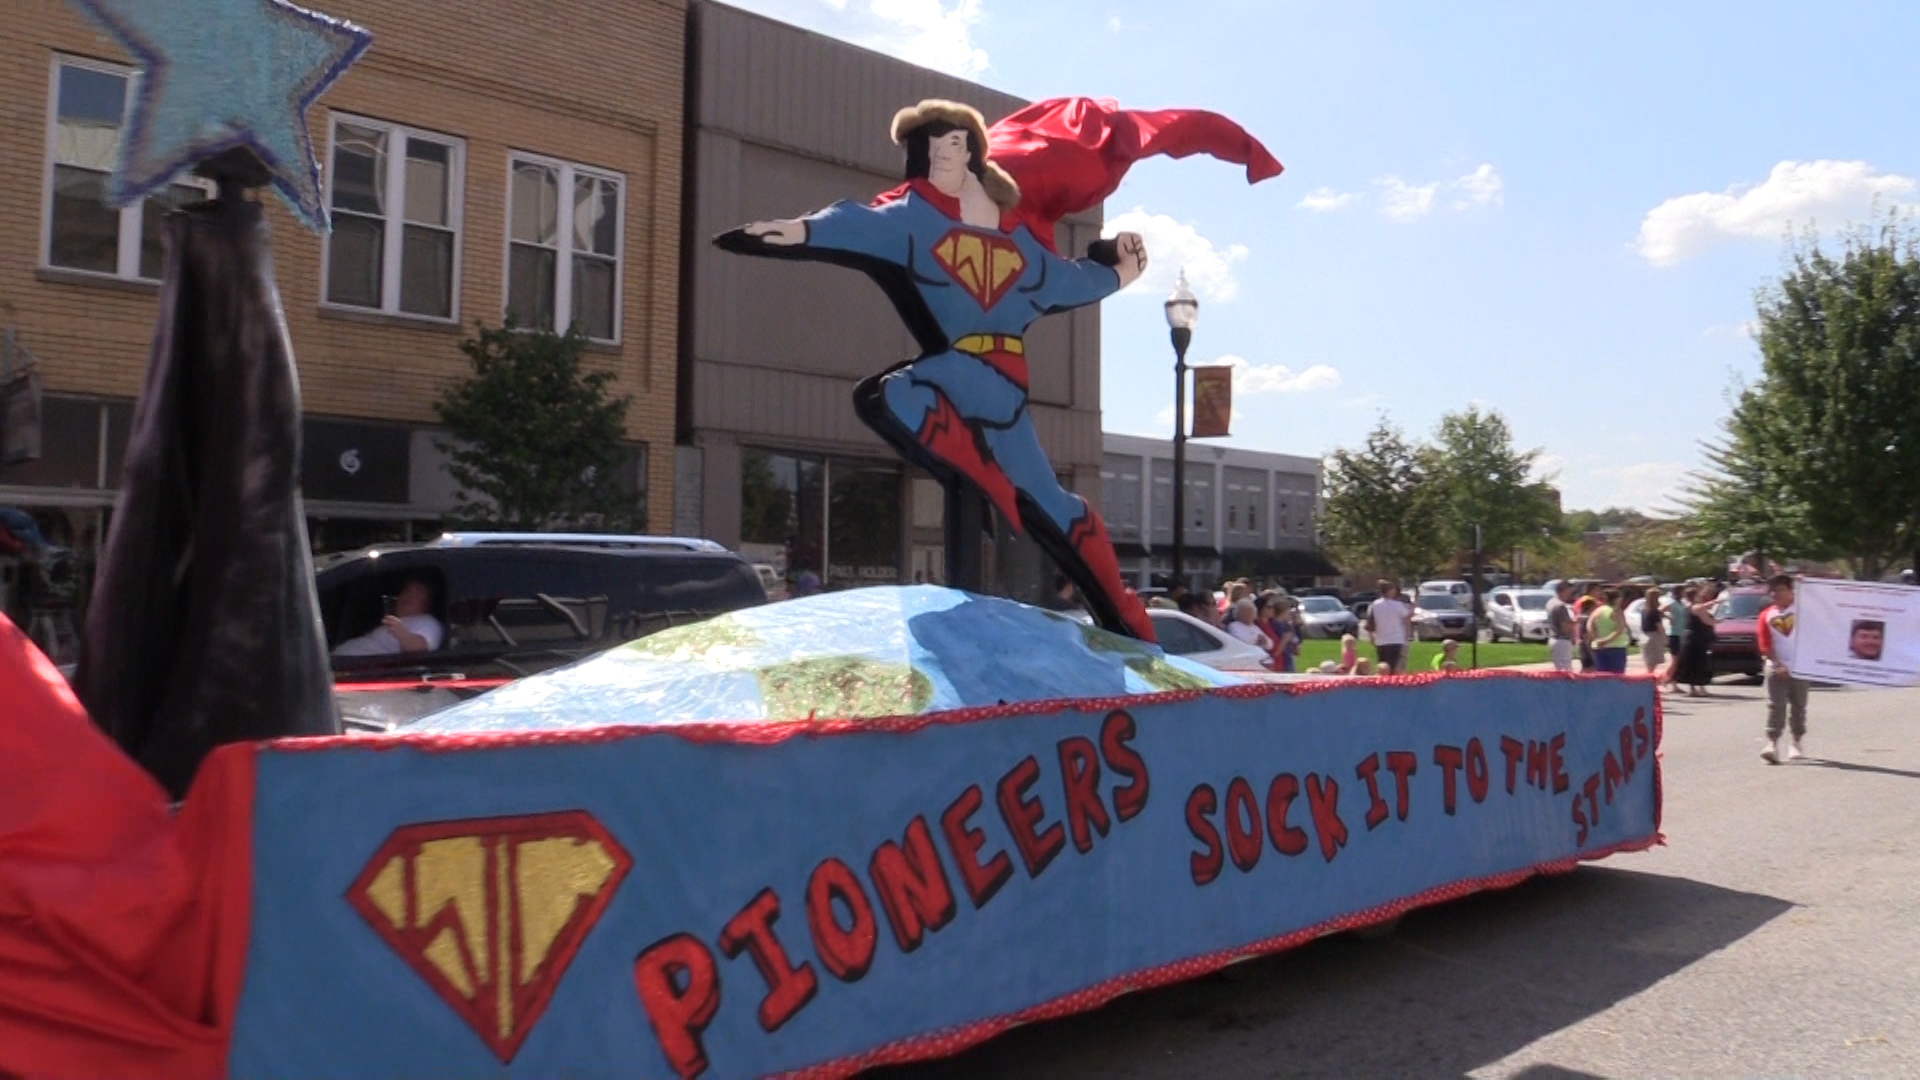 VIDEO - Pioneer homecoming parade